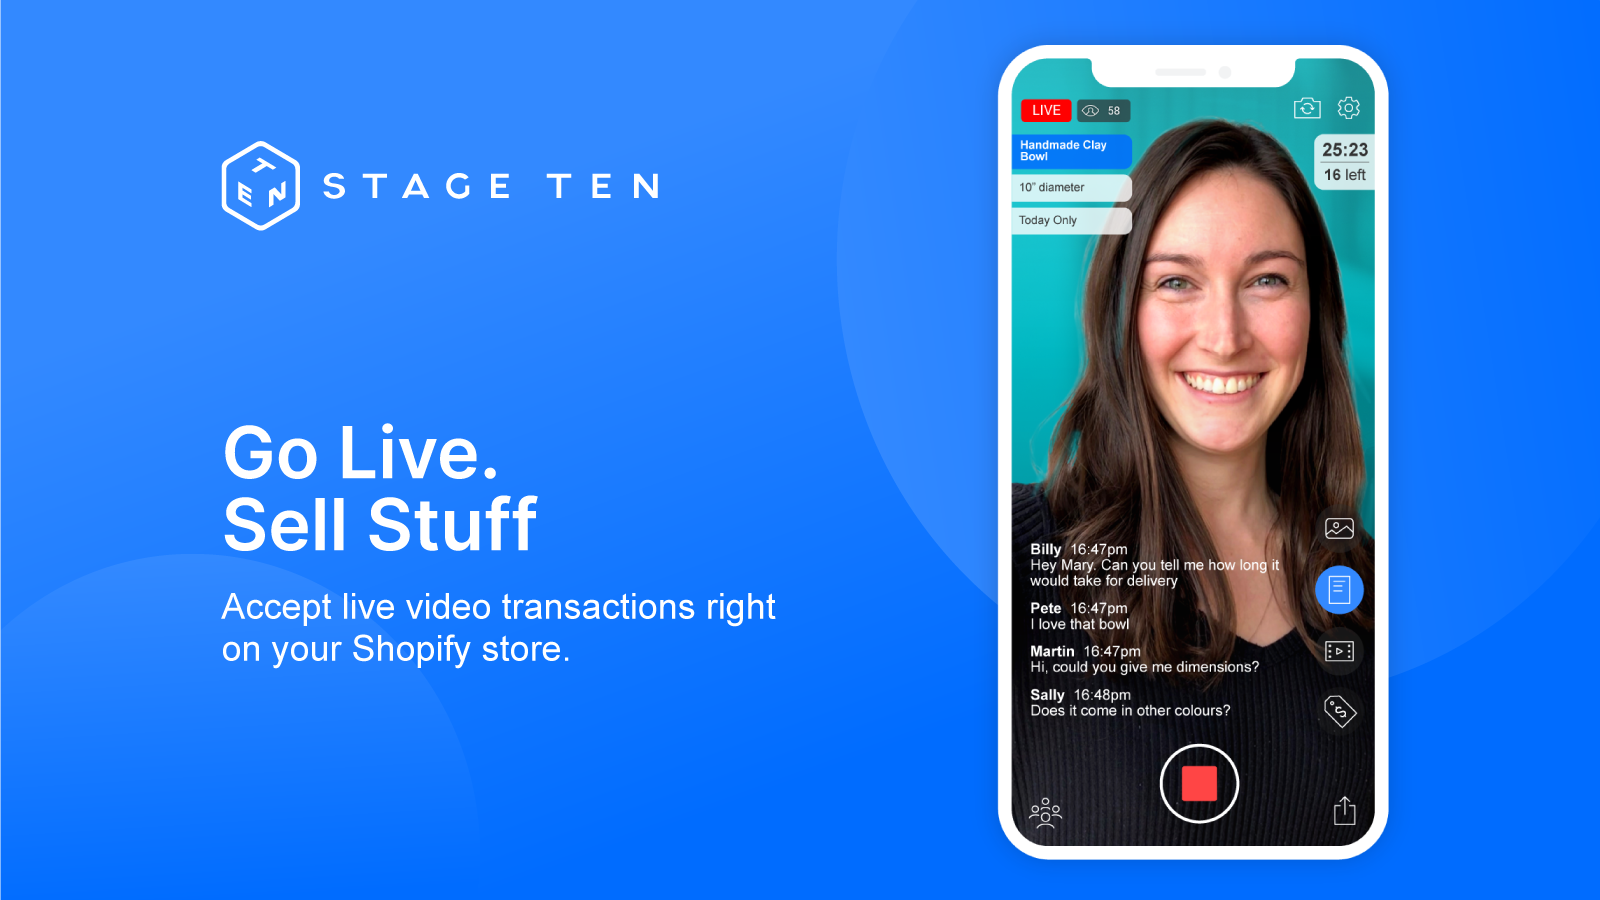 Sell more with live video